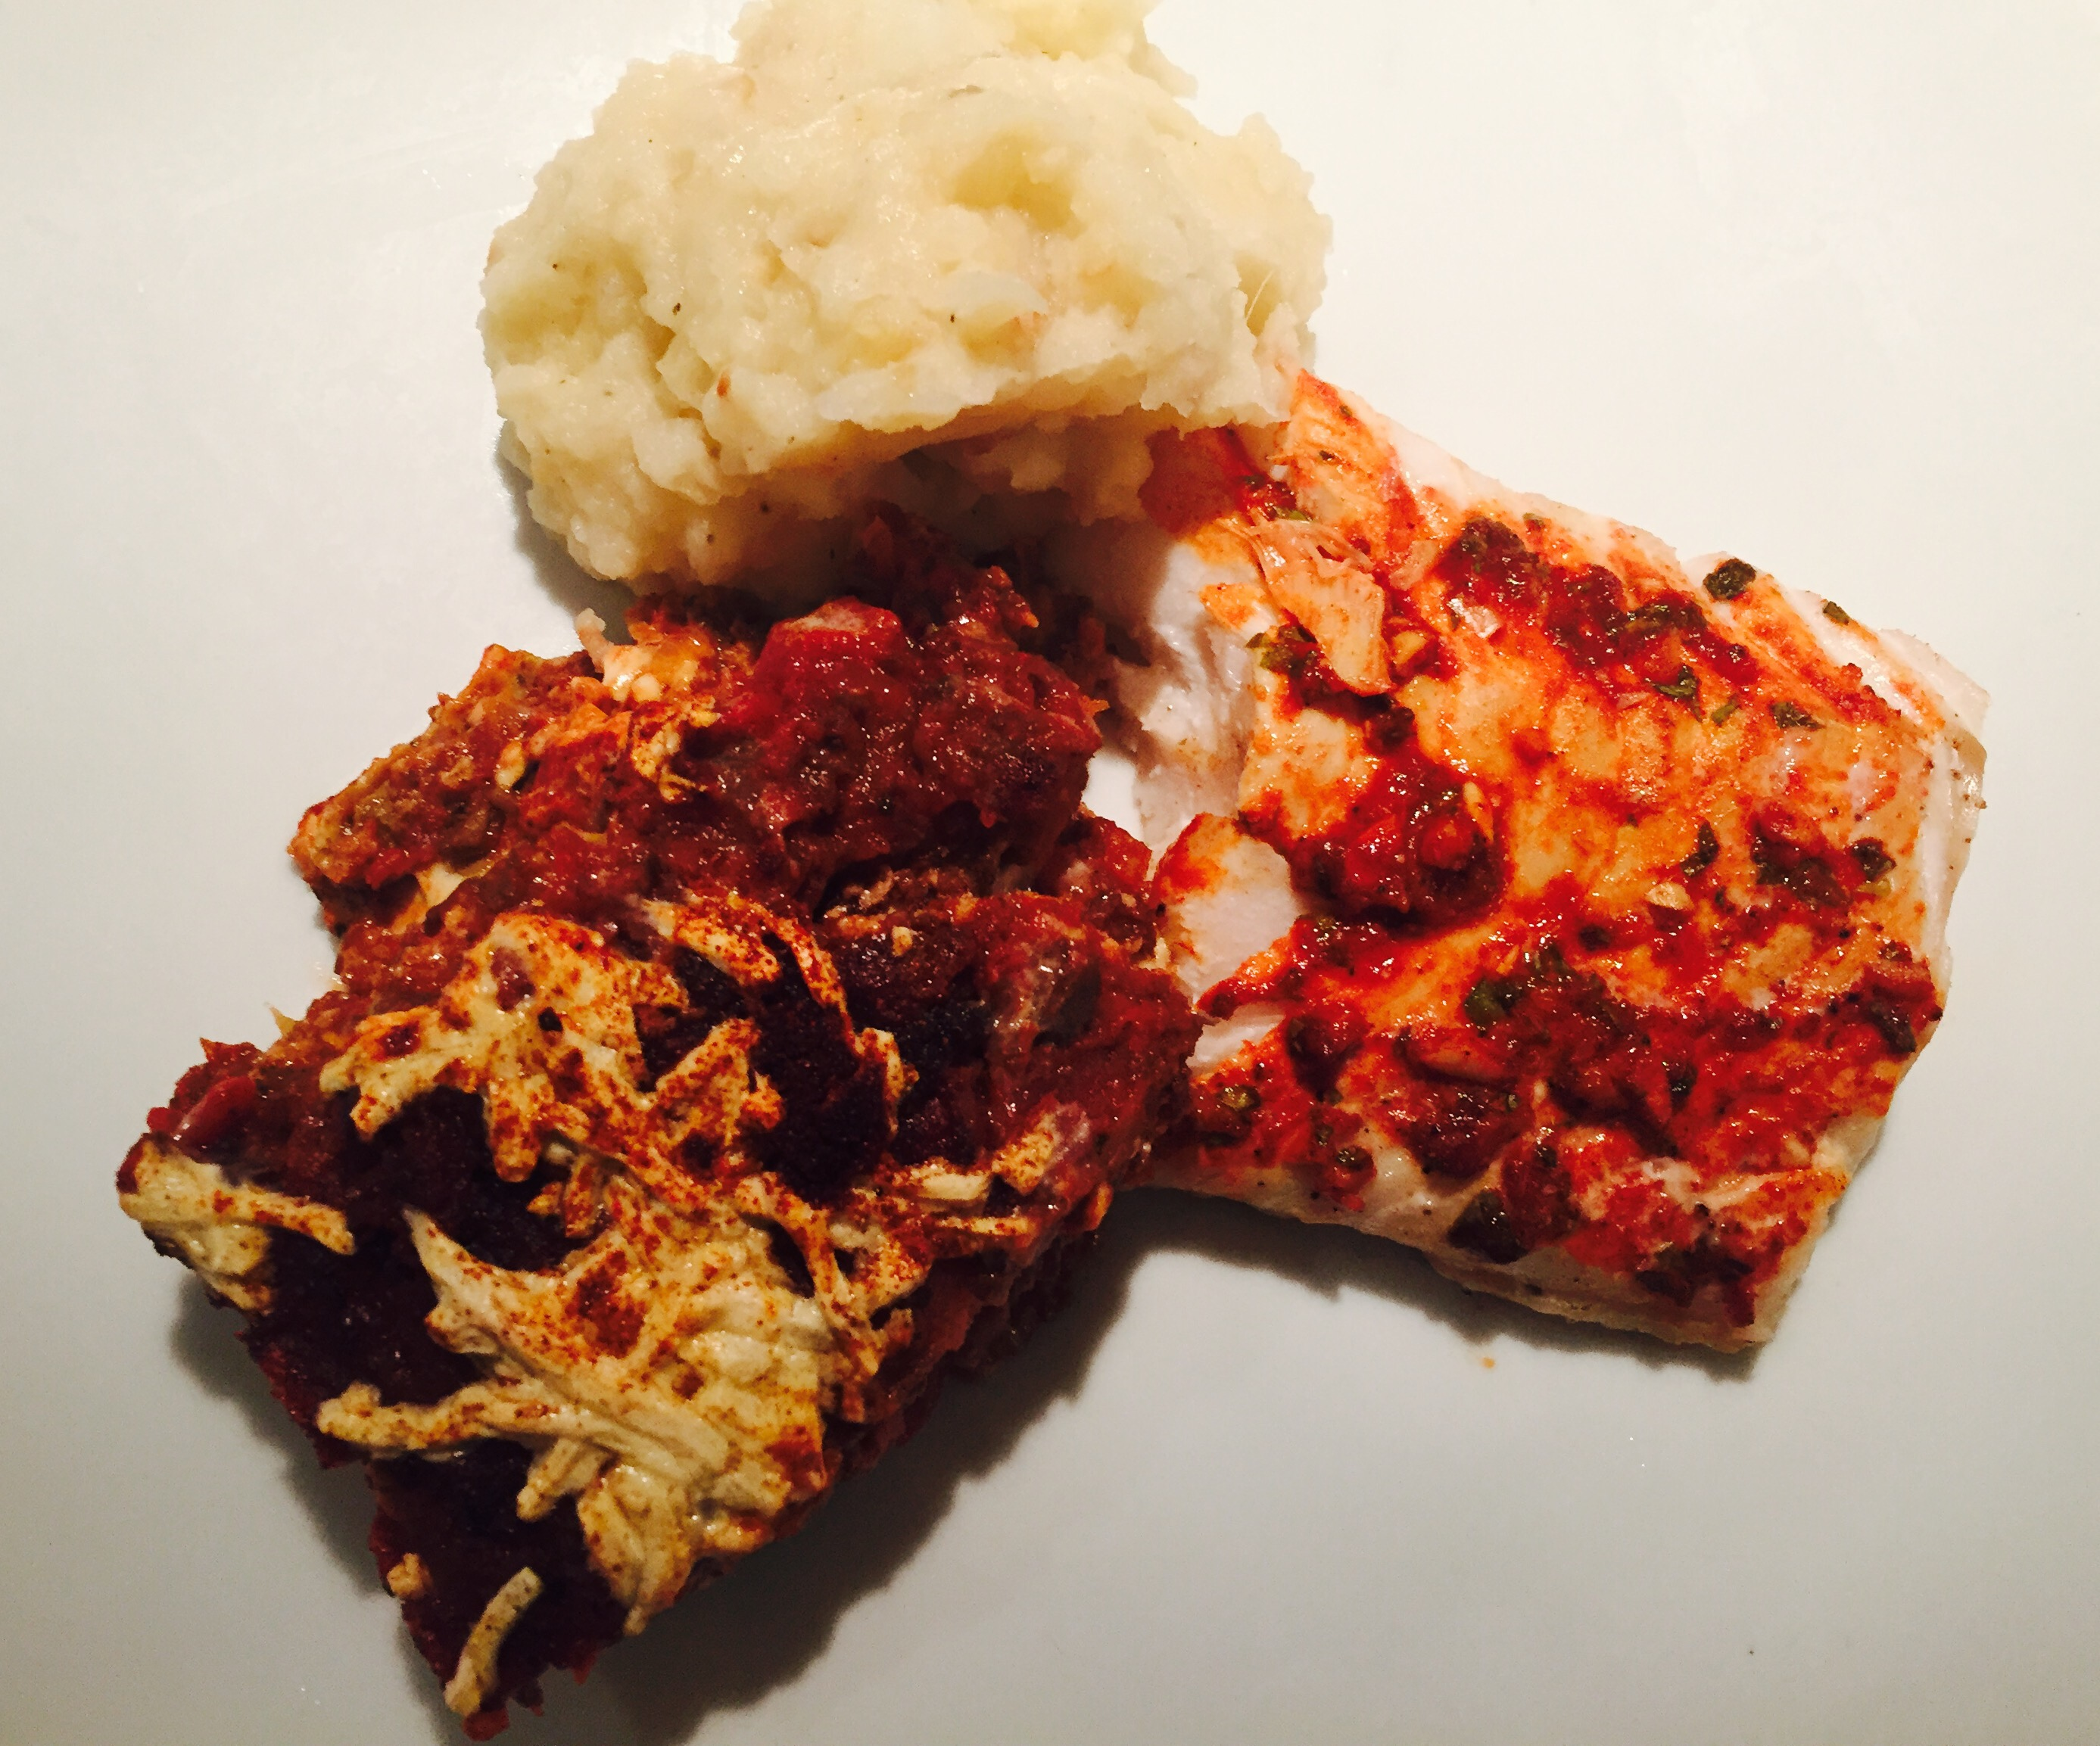 Baked Cod with Eggplant Parmesan & Garlic Mashed Potatoes